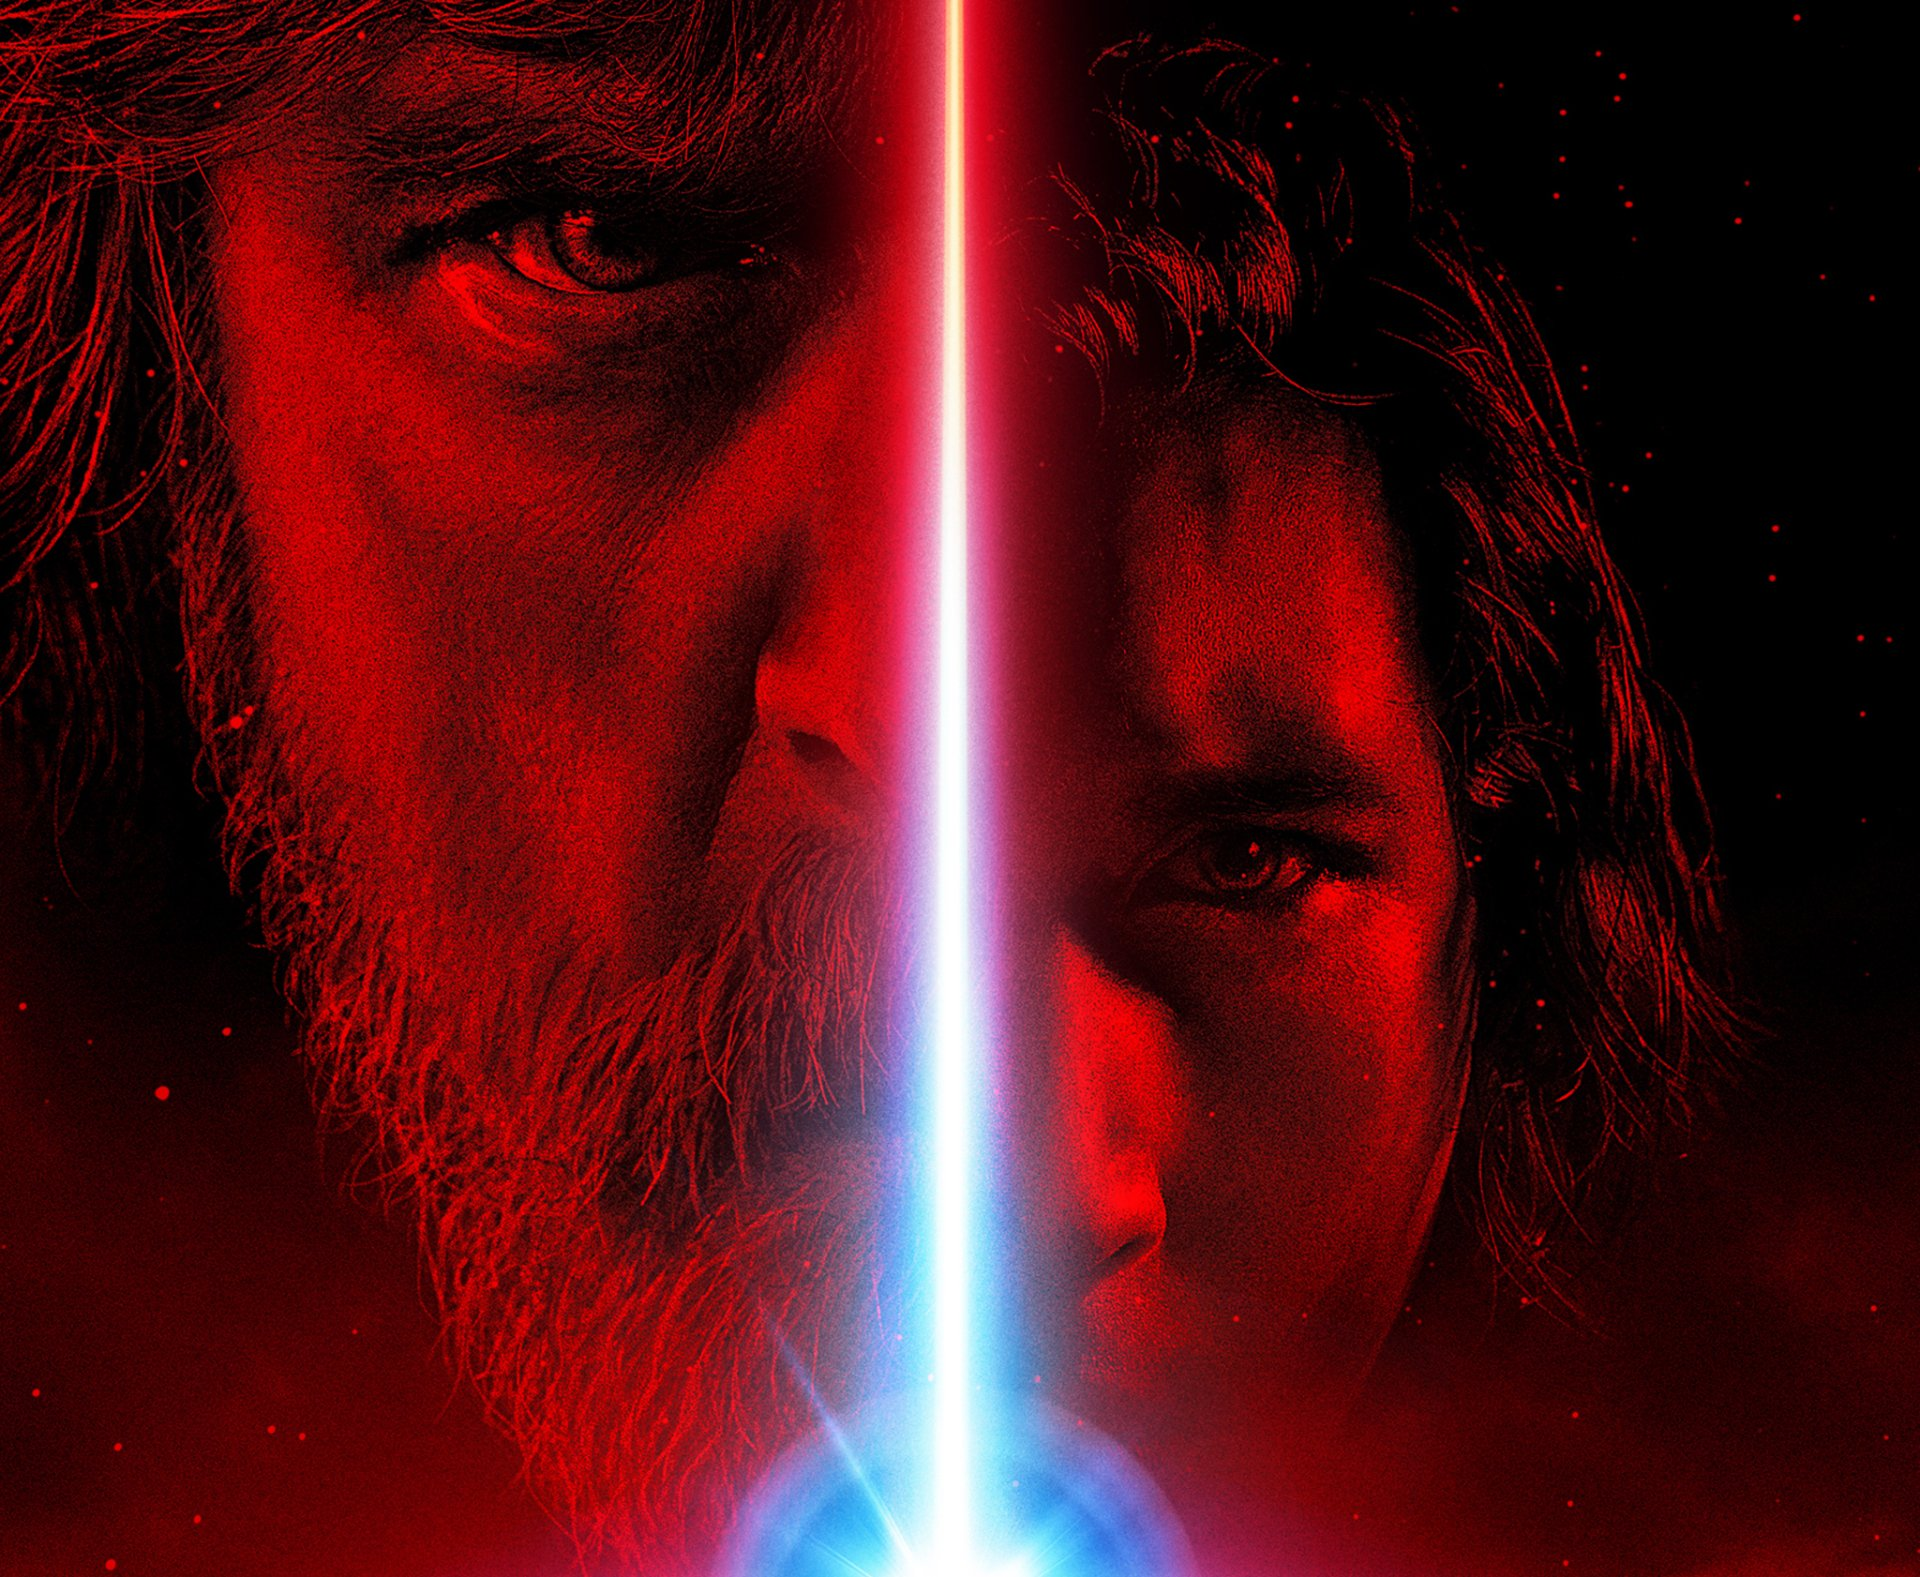 Movie - Star Wars Episode VIII: The Last Jedi  Mark Hamill Adam Driver Luke Skywalker Kylo Ren Star Wars Wallpaper